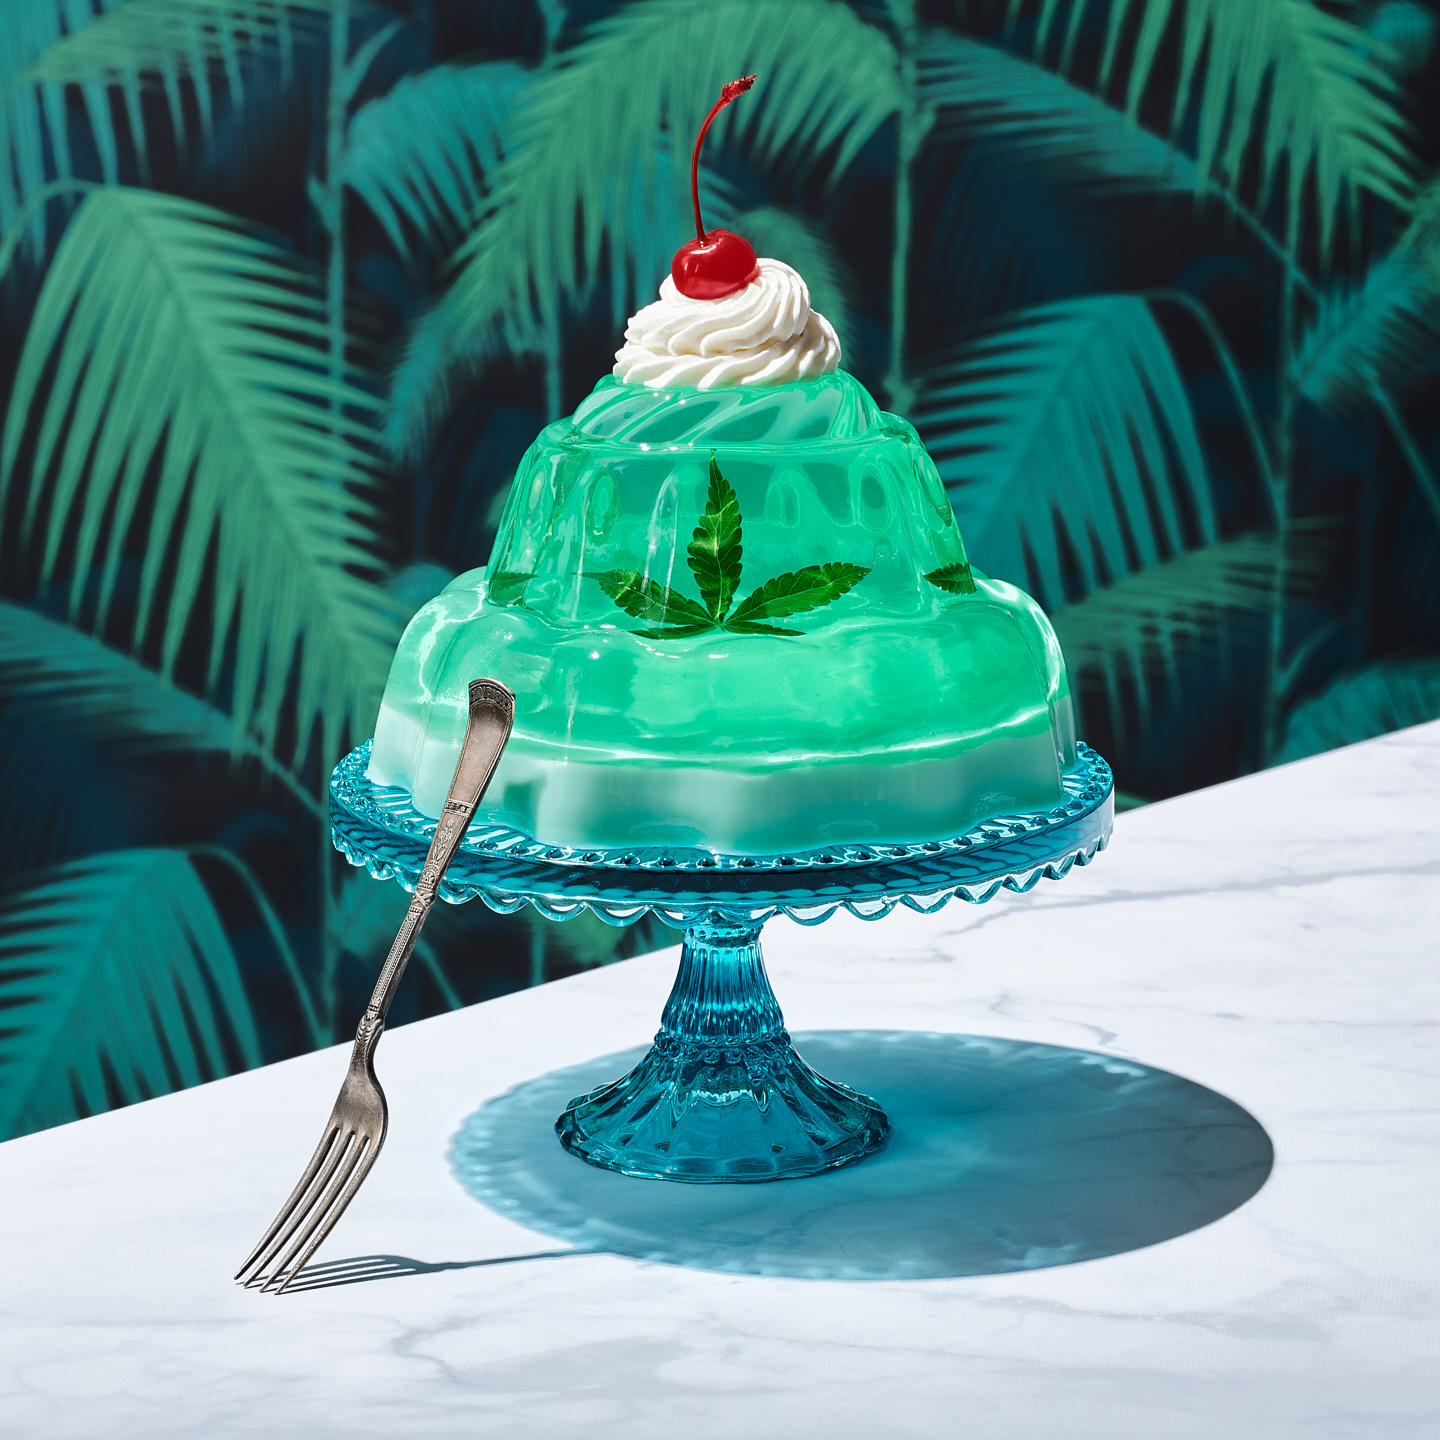 MelloJello by Jessica Stewart Prop Stylist Specializing in Cannabis Imagery and Styling